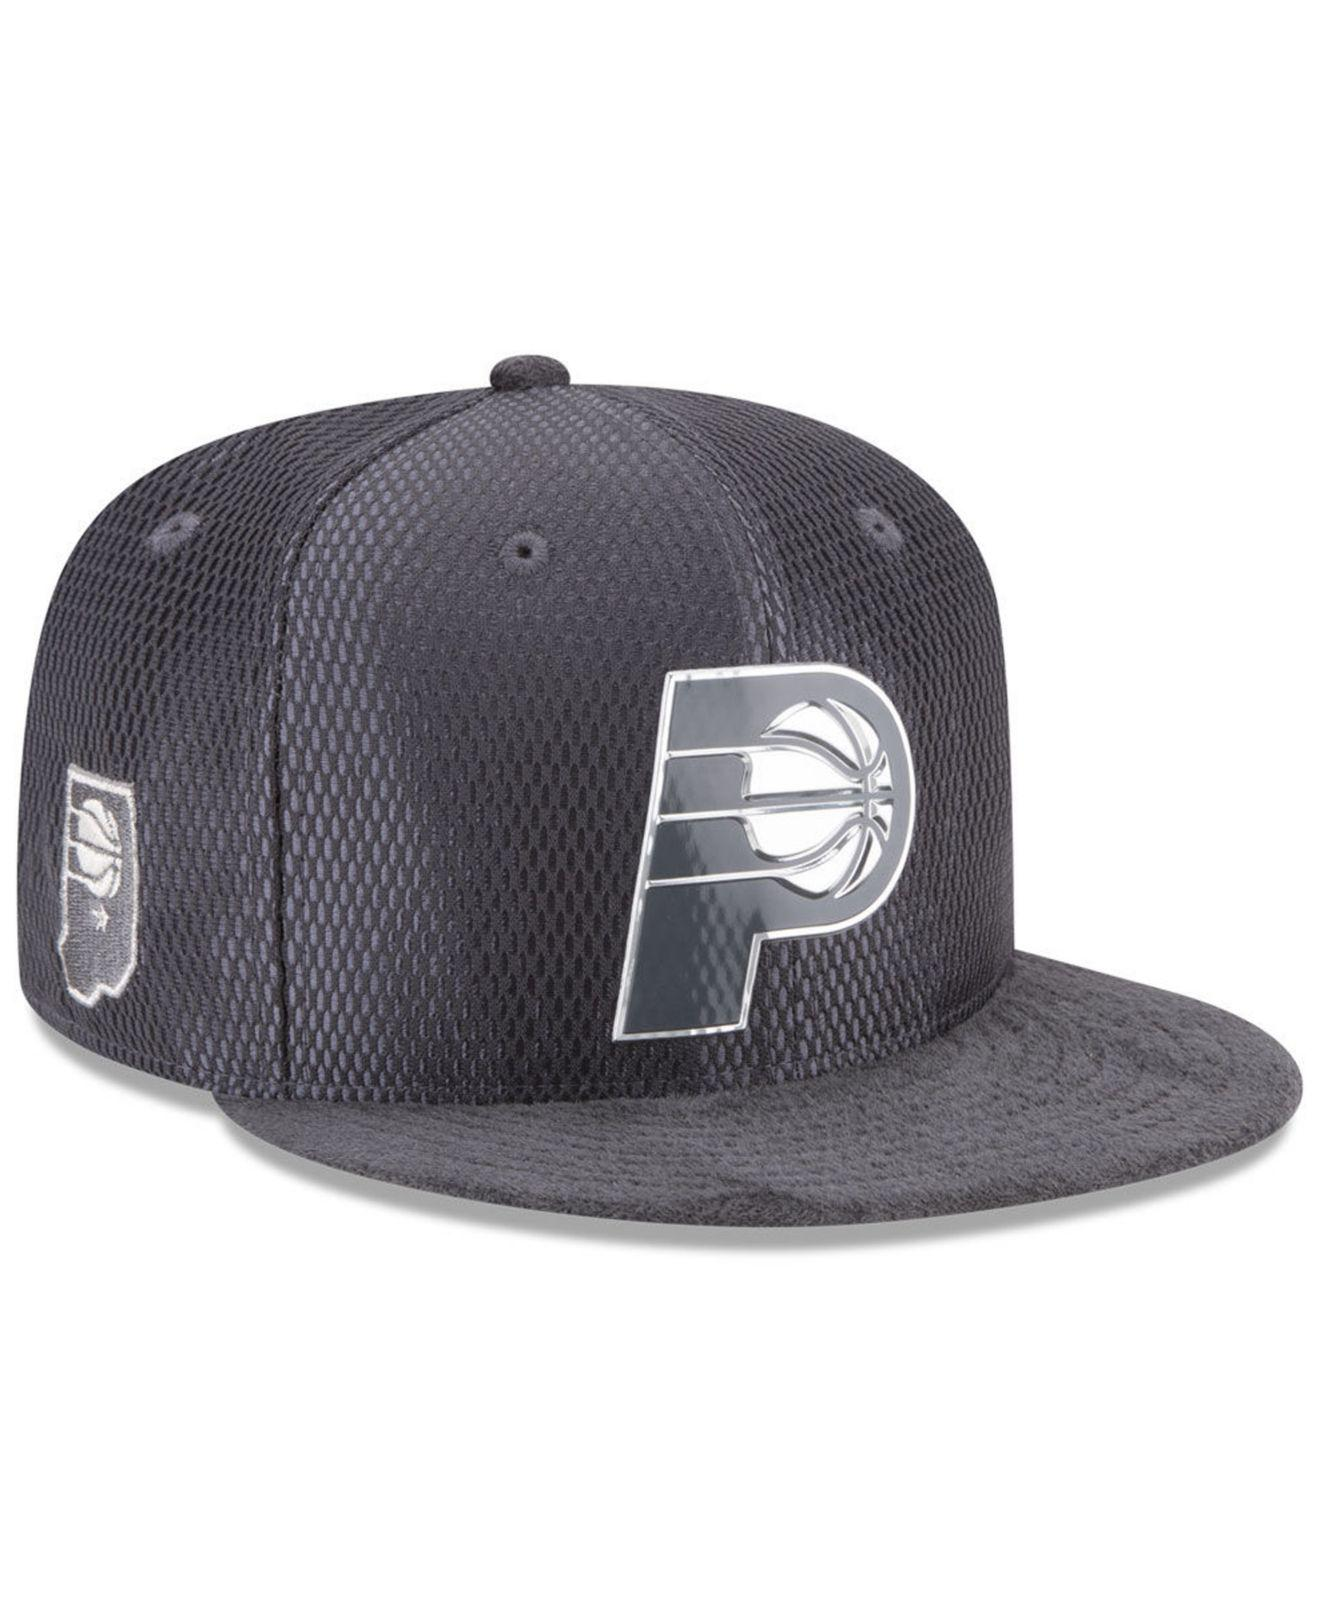 7e1ecfd4cc7ca Lyst - KTZ On-court Graphite Collection 9fifty Snapback Cap for Men